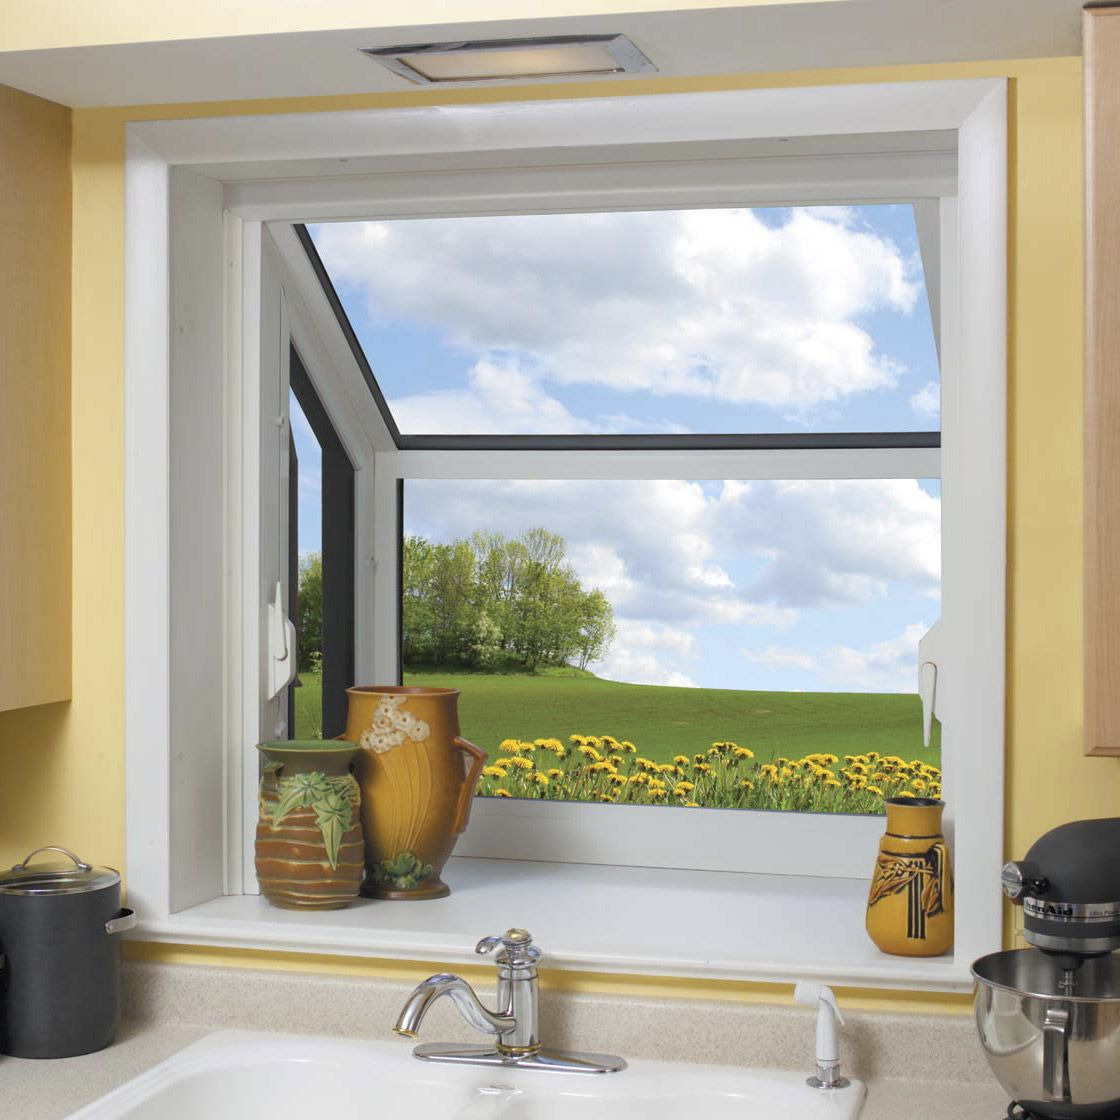 Kitchen Garden Windows Lowes With Images Small Garden Window